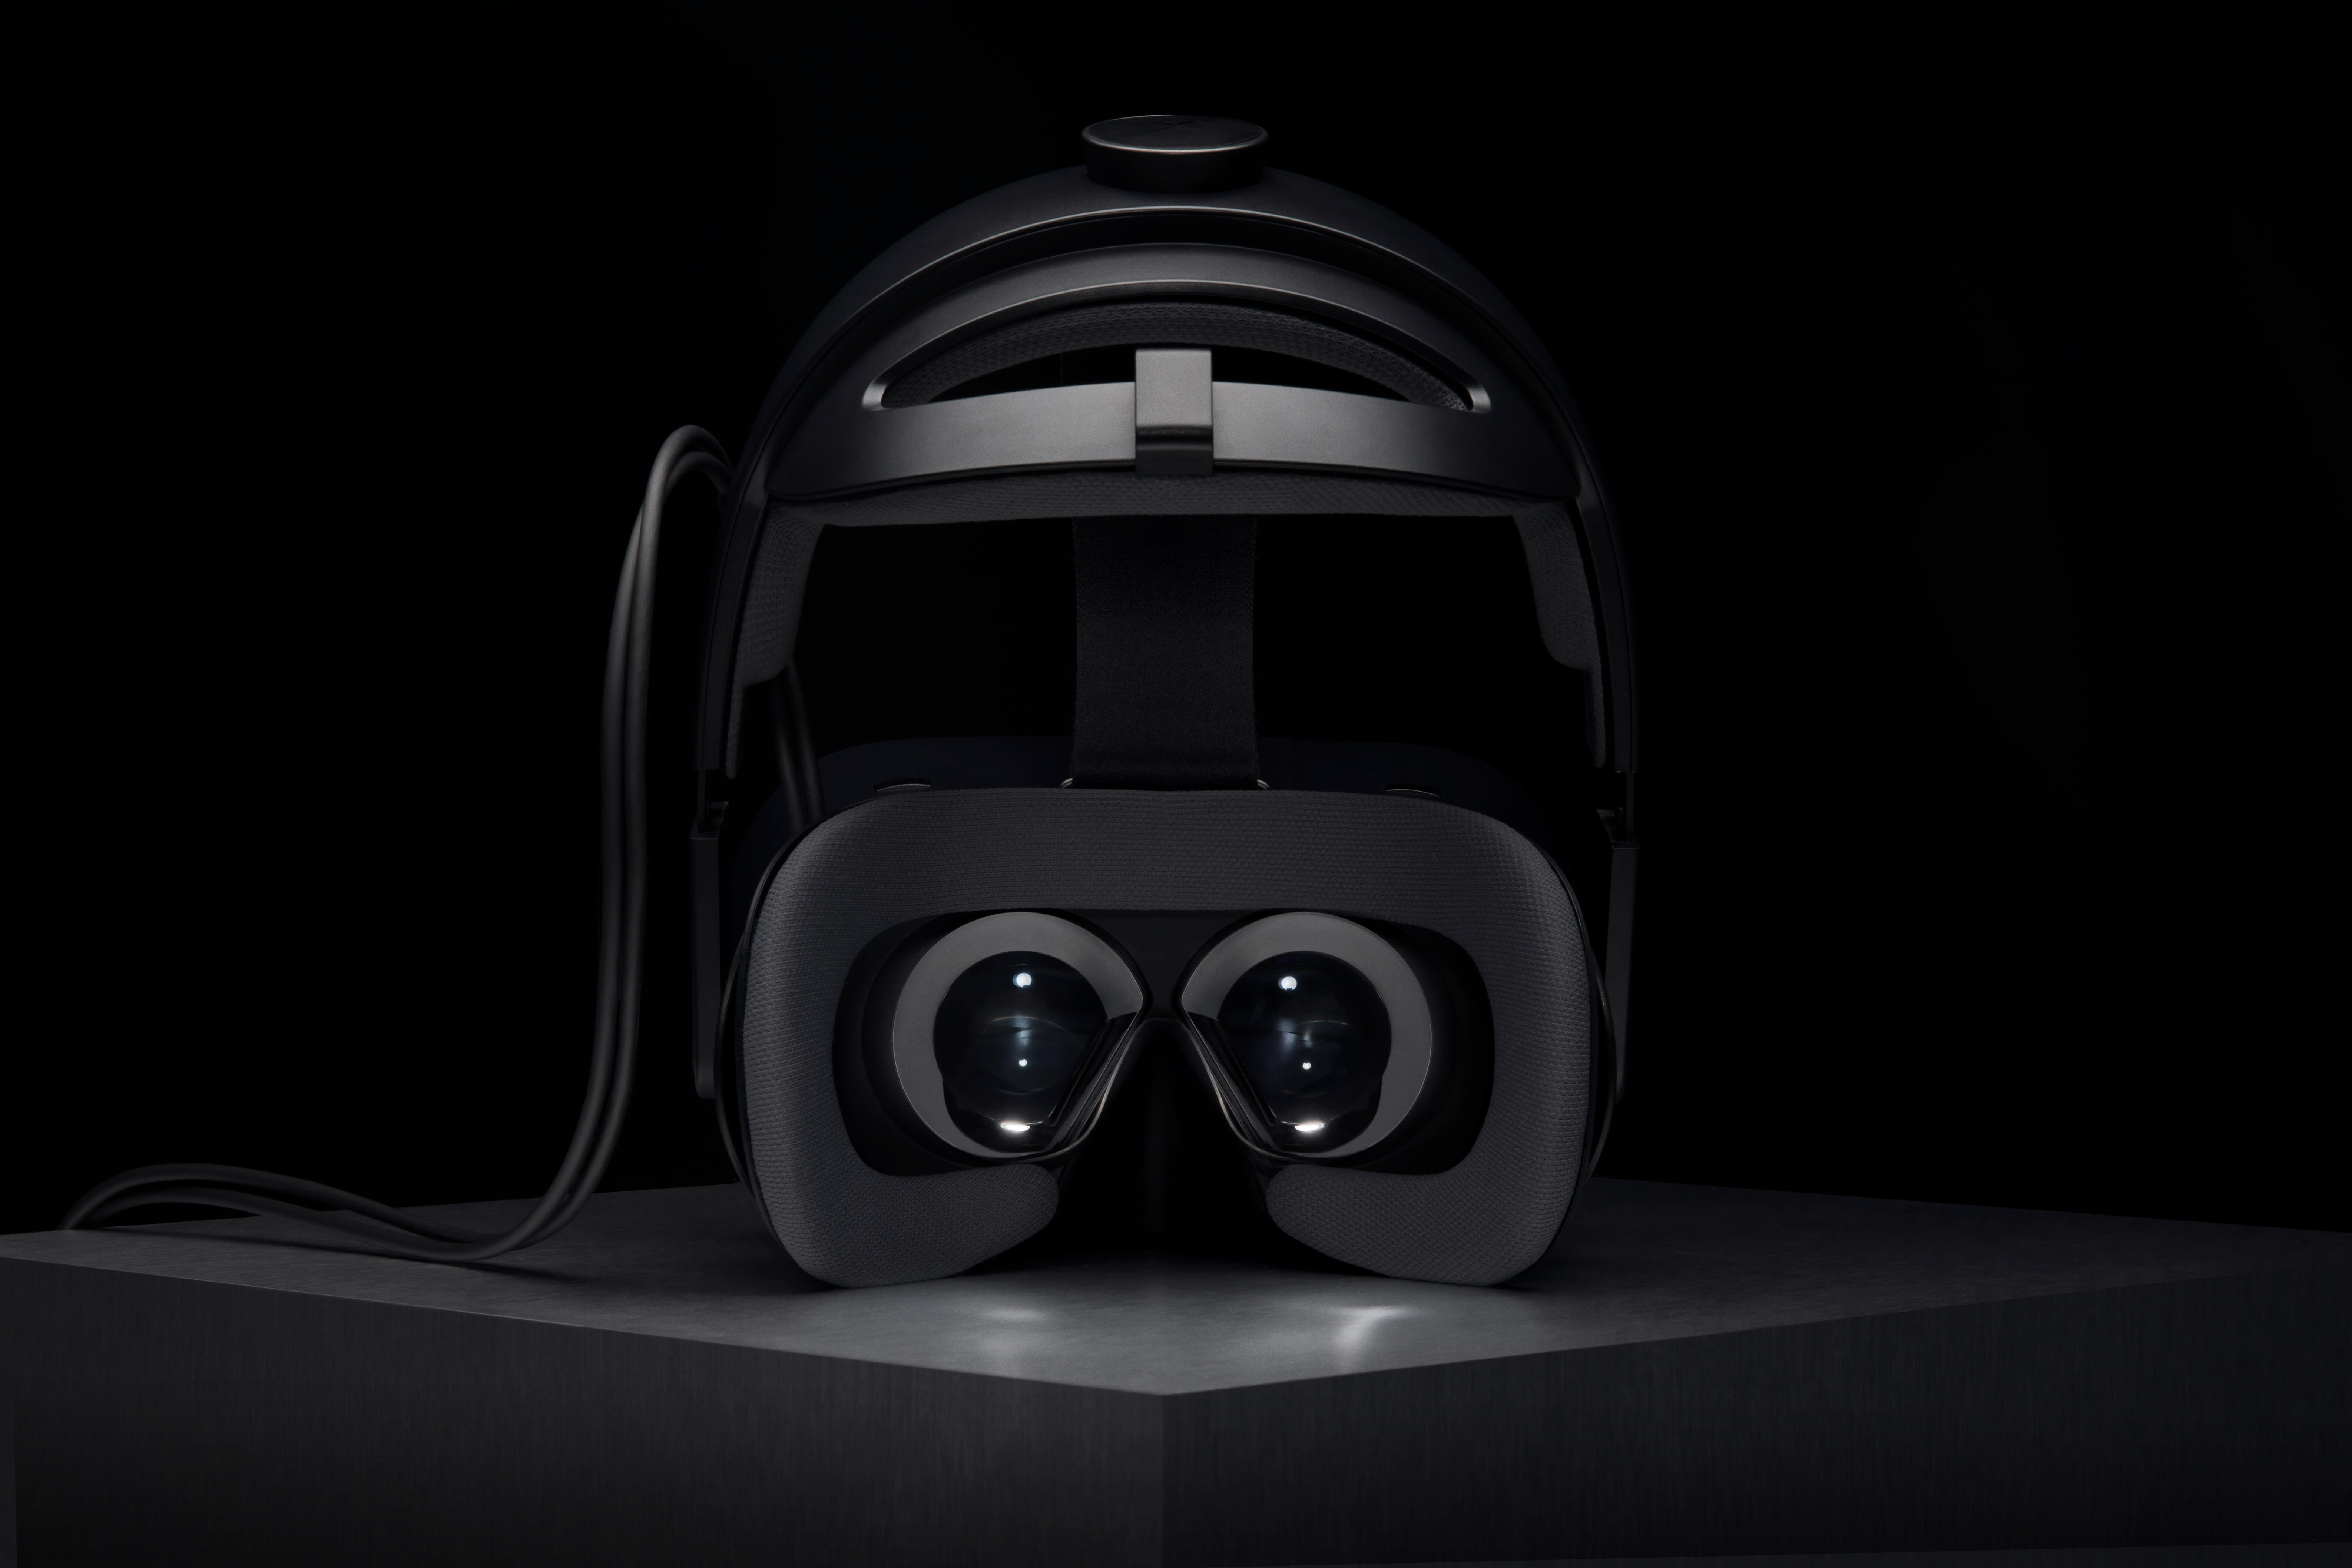 'Human-eye resolution'. The Varjo VR-1 headset with helmet attached.